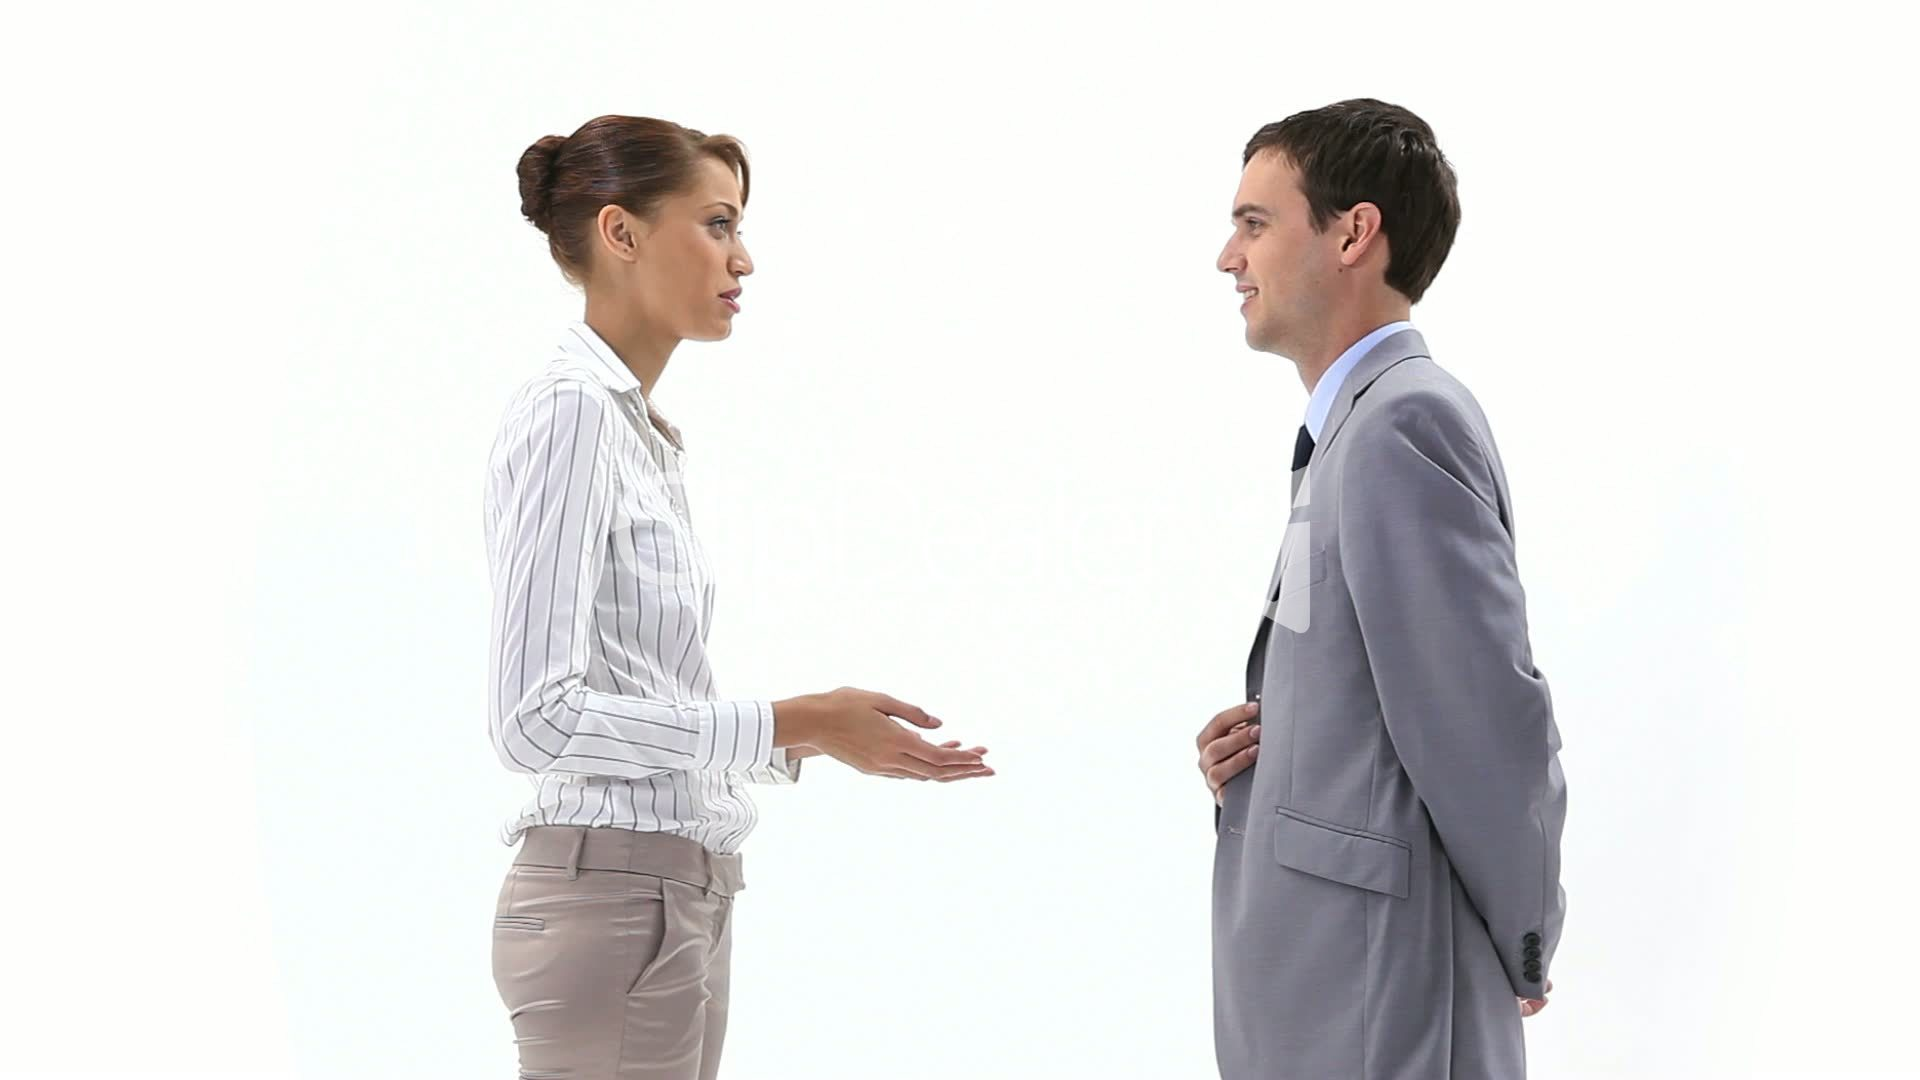 Two people communicating